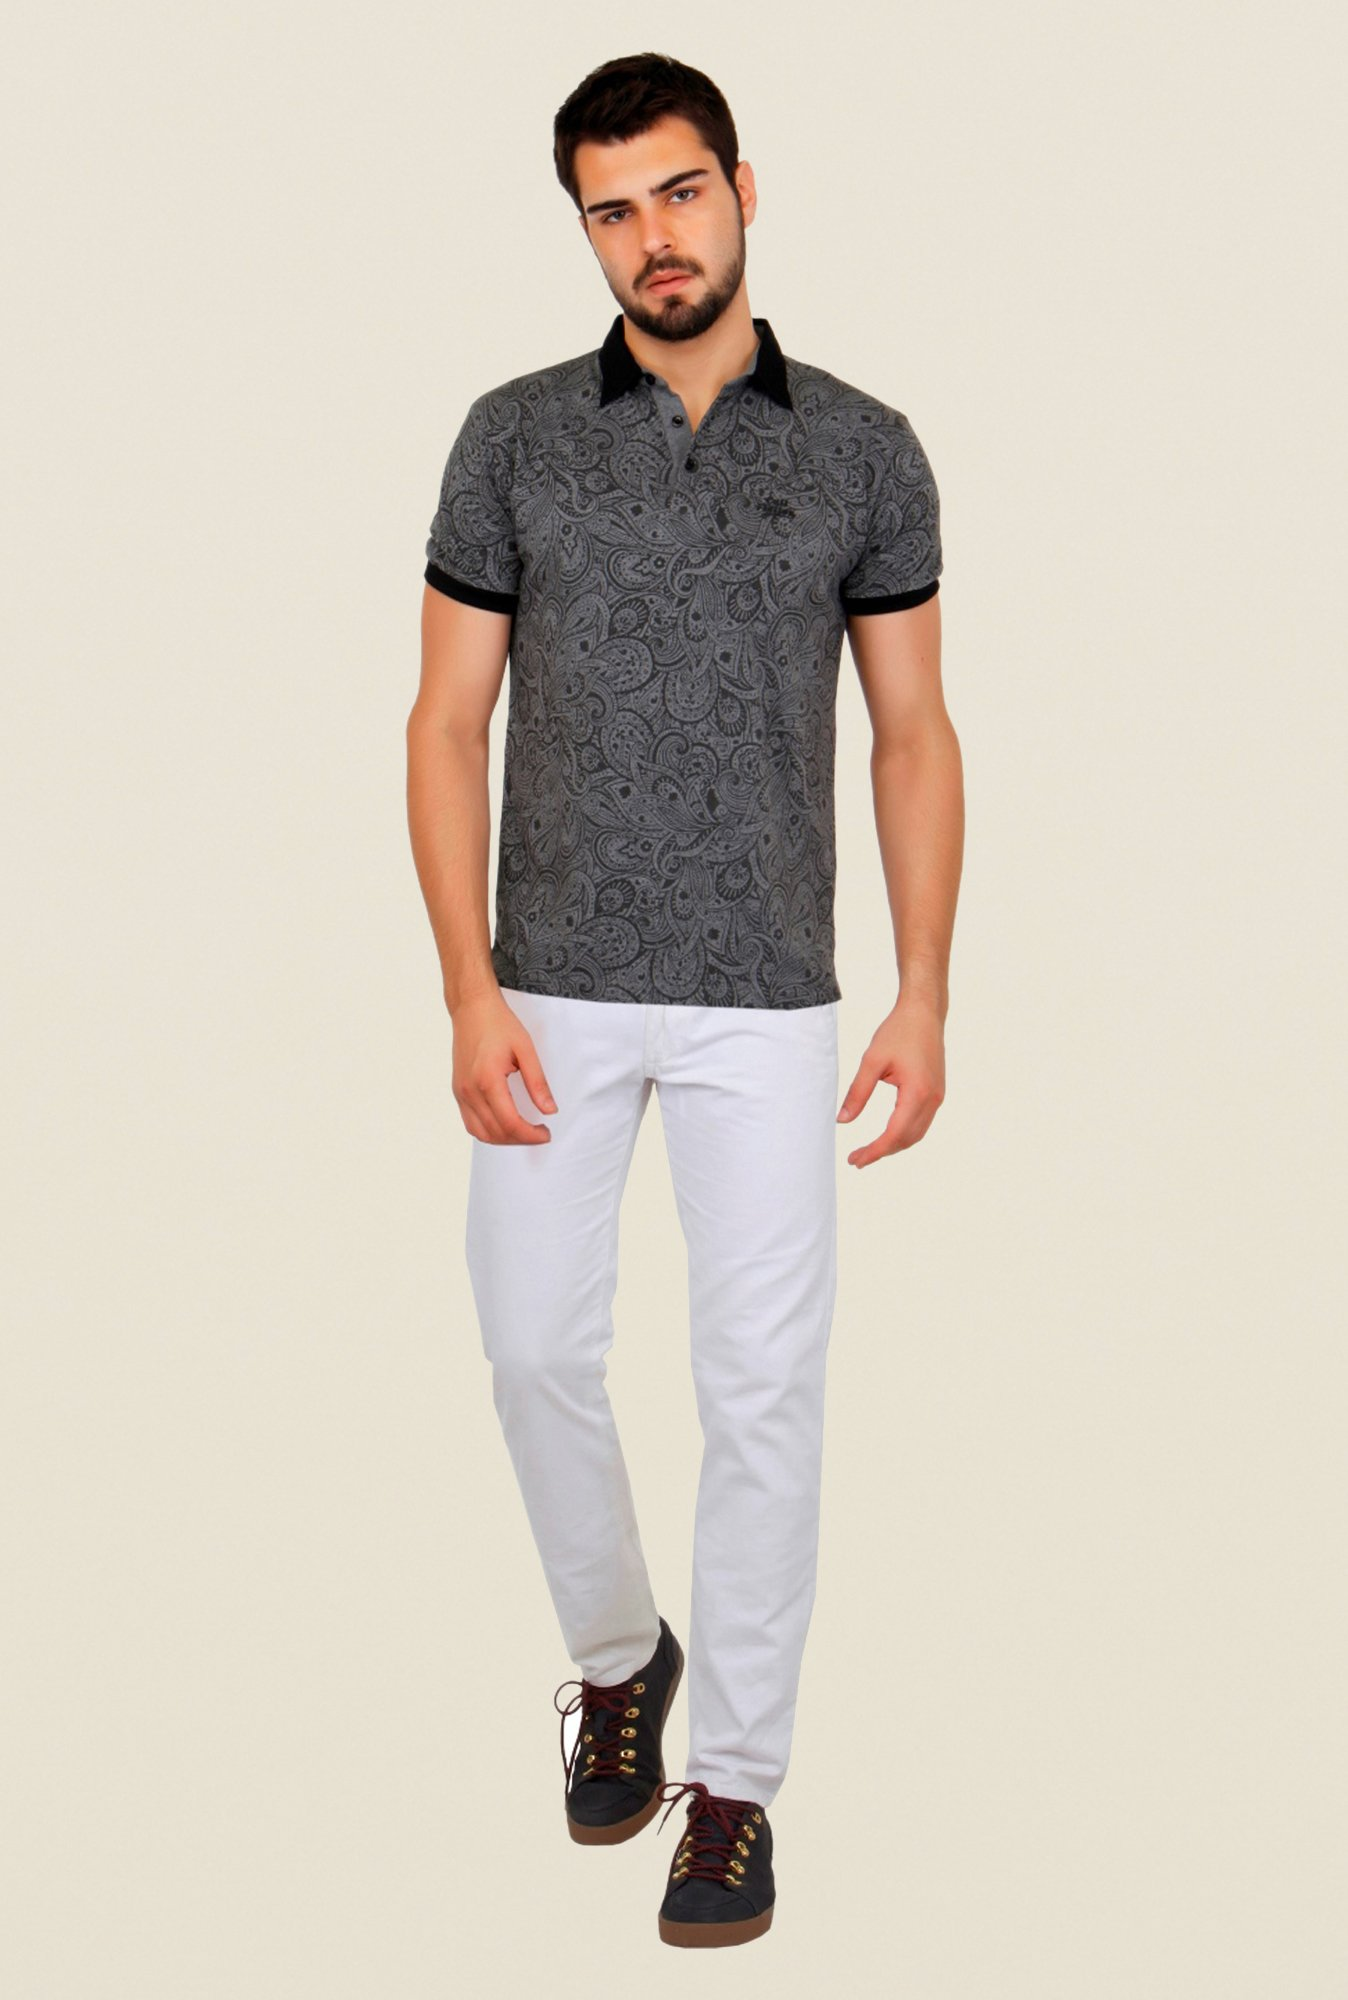 Cult Fiction Grey Paisley Print Polo T Shirt